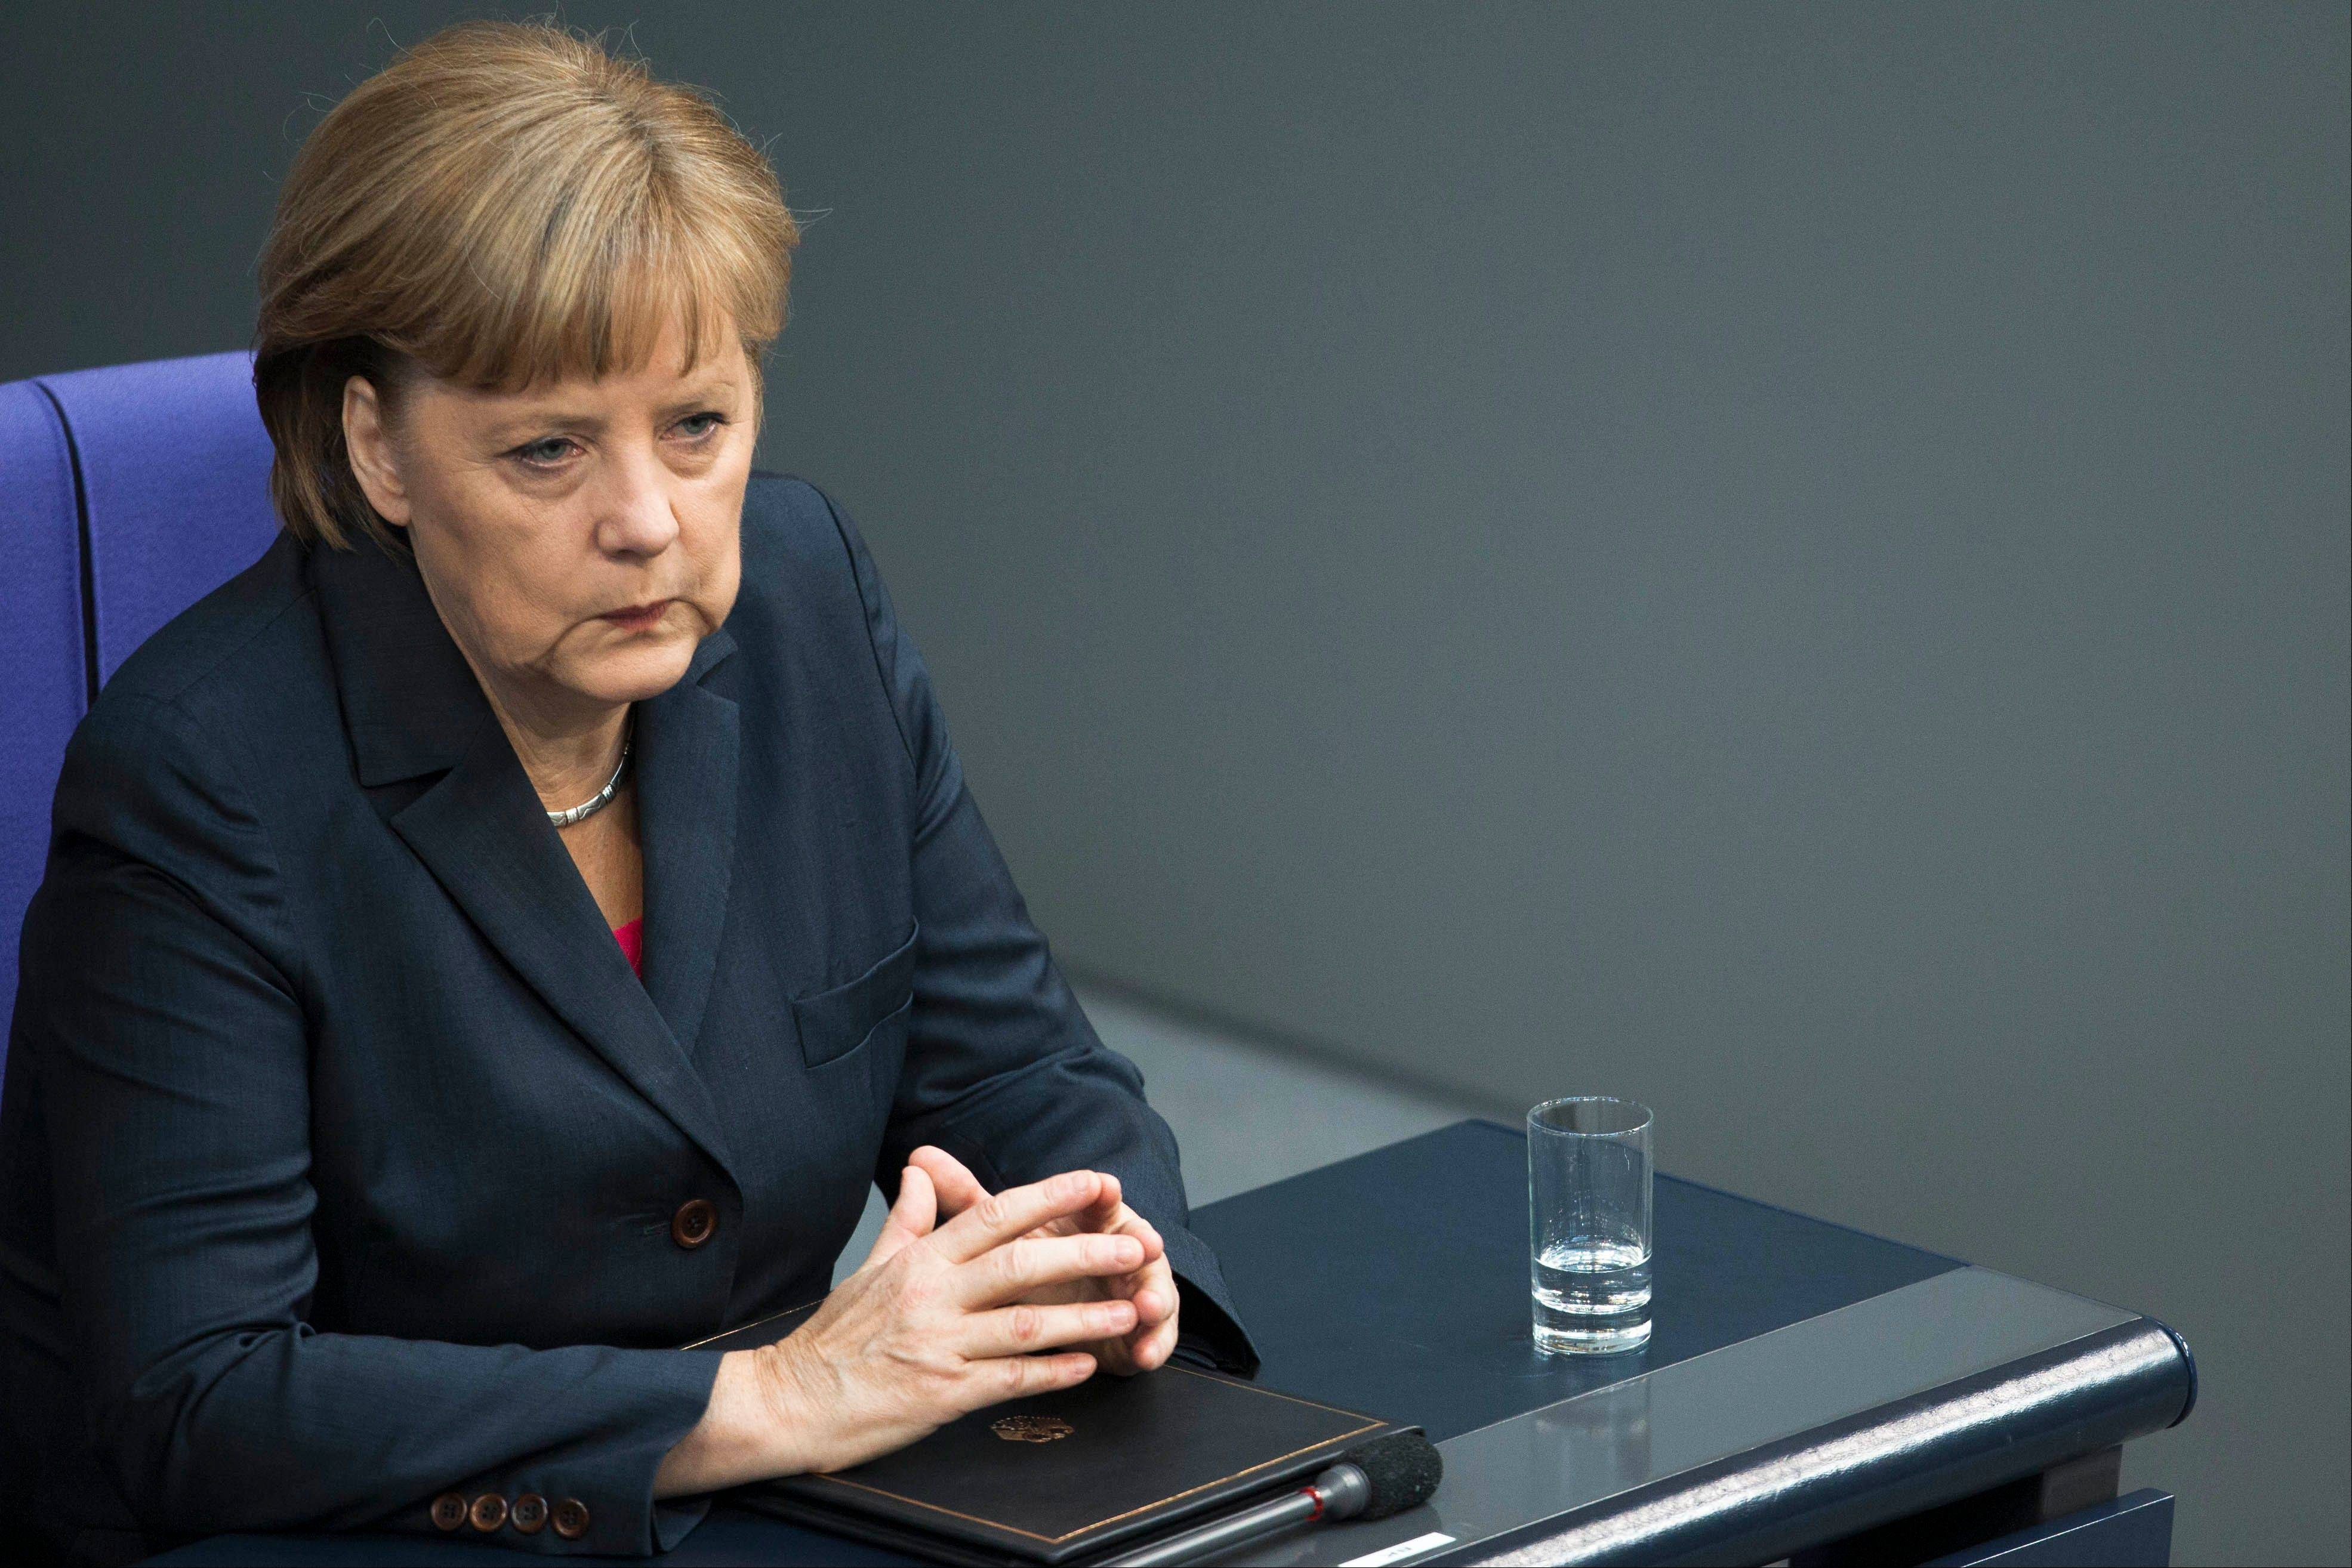 Associated PressGerman Chancellor Angela Merkel reacts before her speech prior to this weekend's G20 summit at the Bundestag in Berlin.